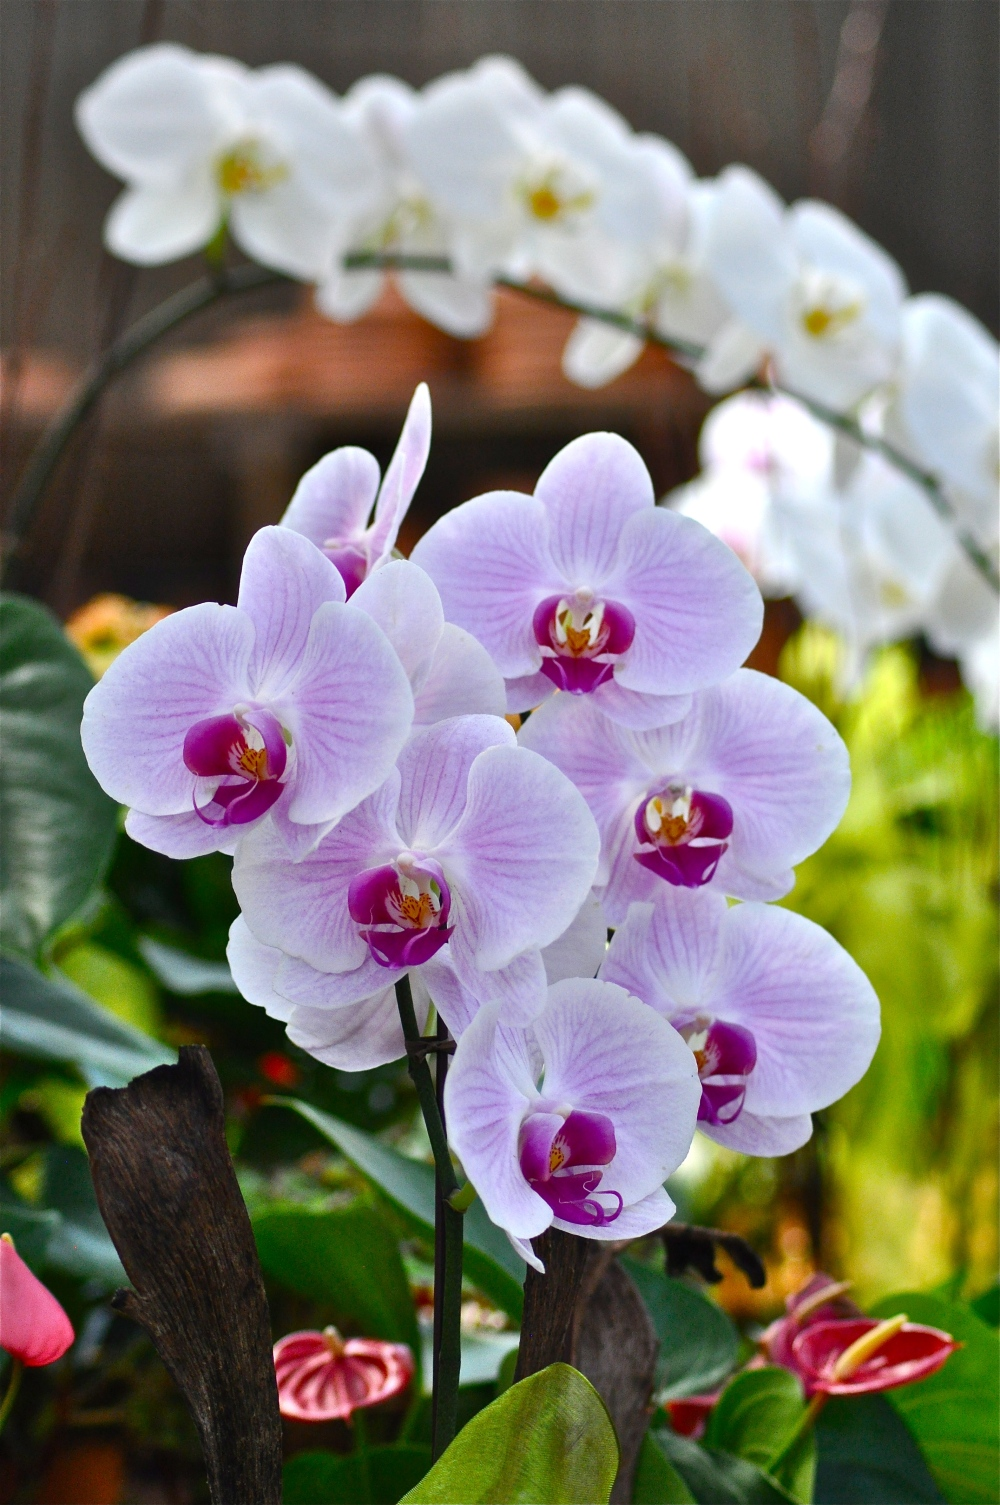 Amy, if you hate Orchids so much, why do you photograph them first?